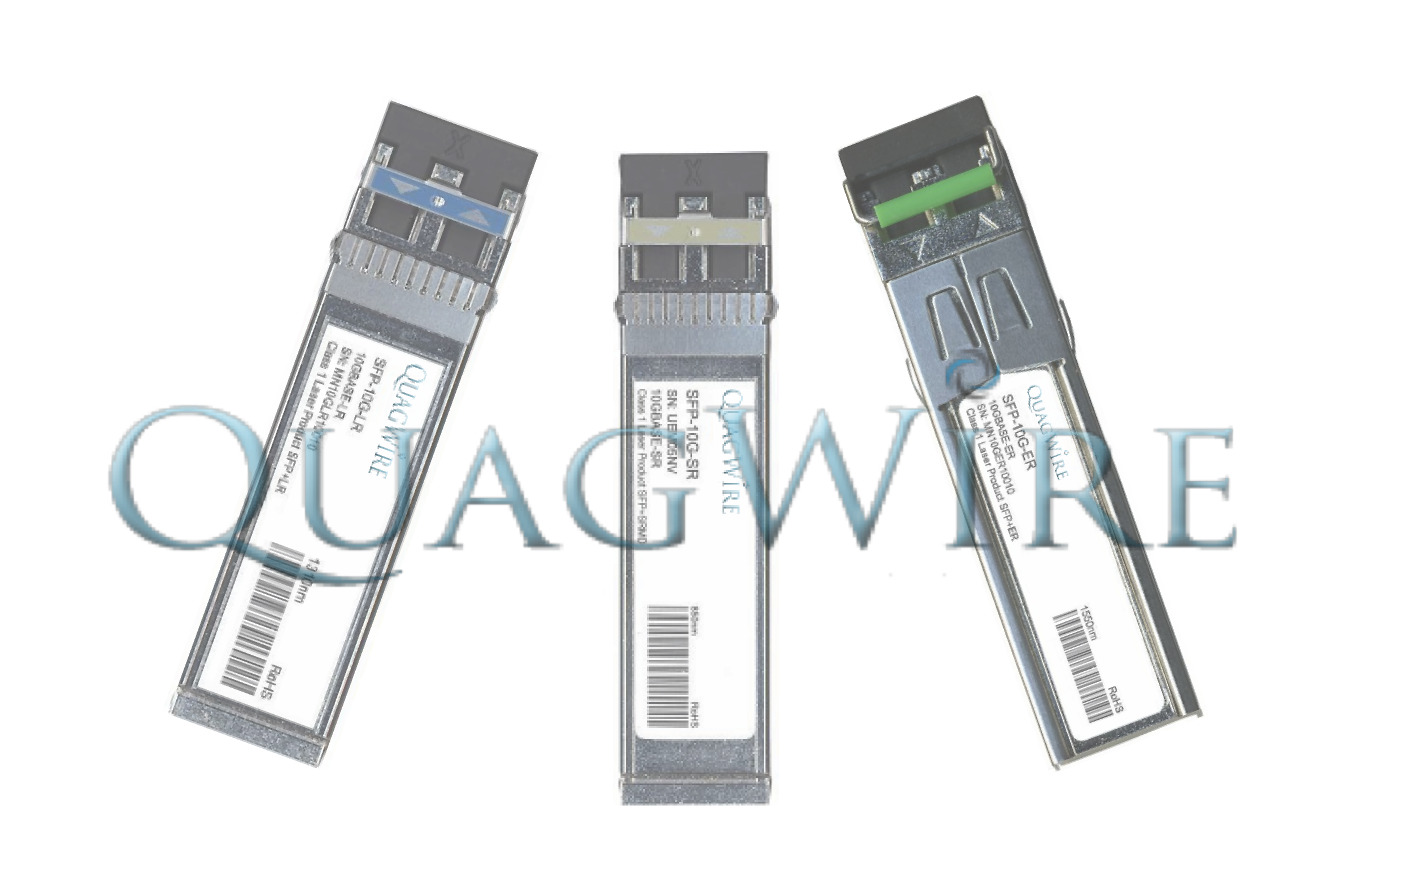 iSFP-10G-SR Alcatel 10GbE 10GBASE-SR 300m 850nm MMF SFP+ Optical Transceiver iSFP-10G-SR